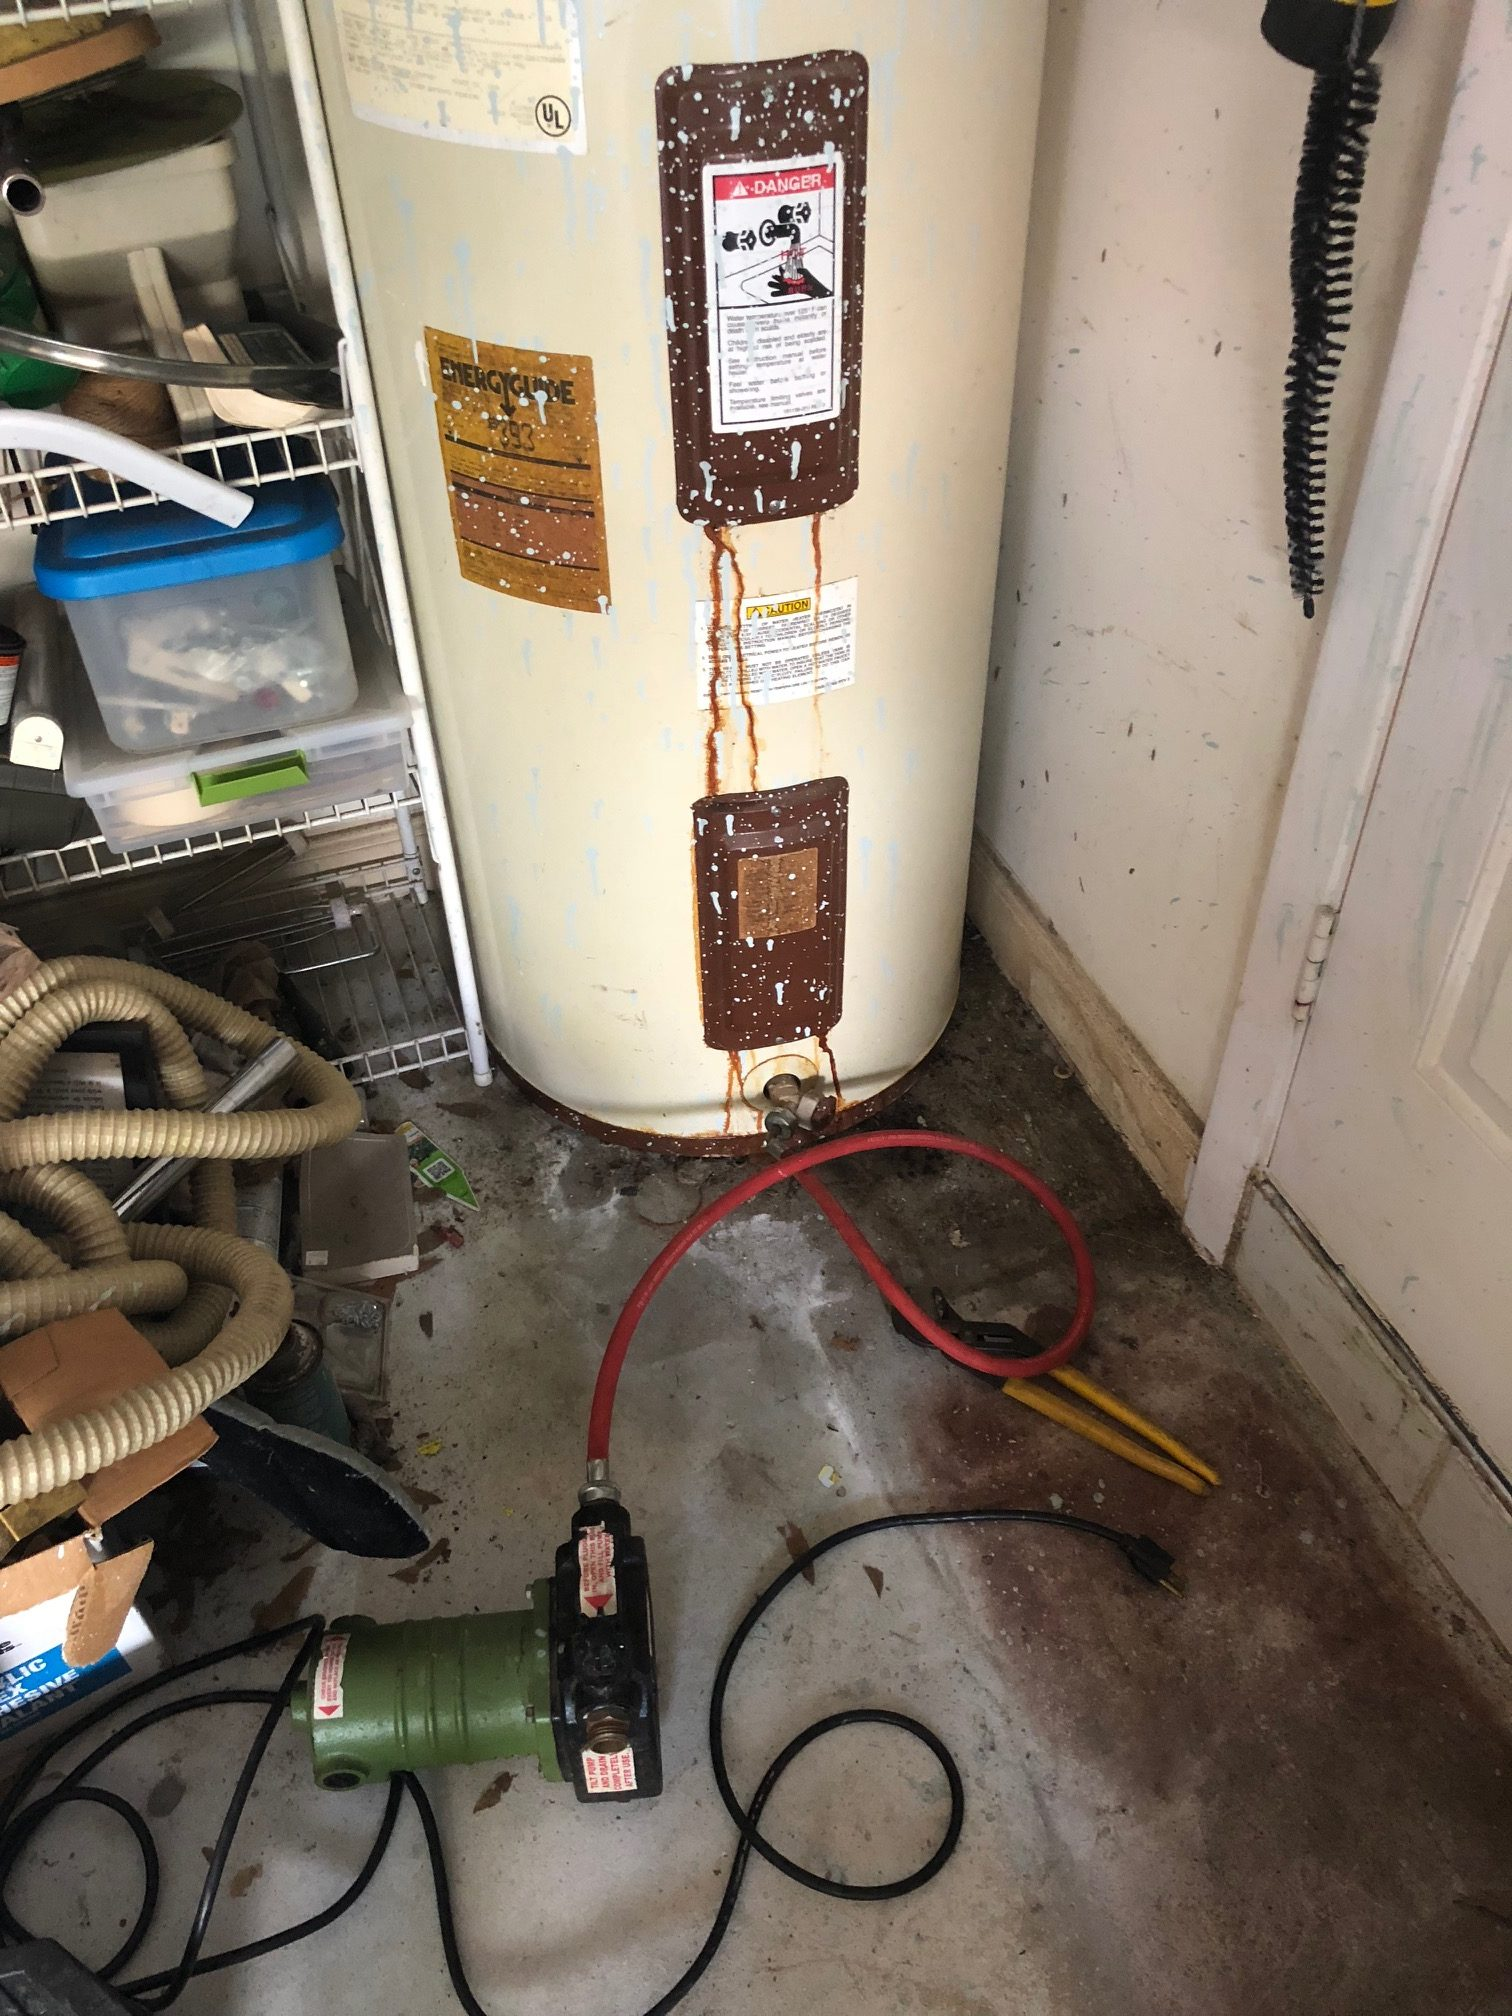 draining old water heater with a pump and hose